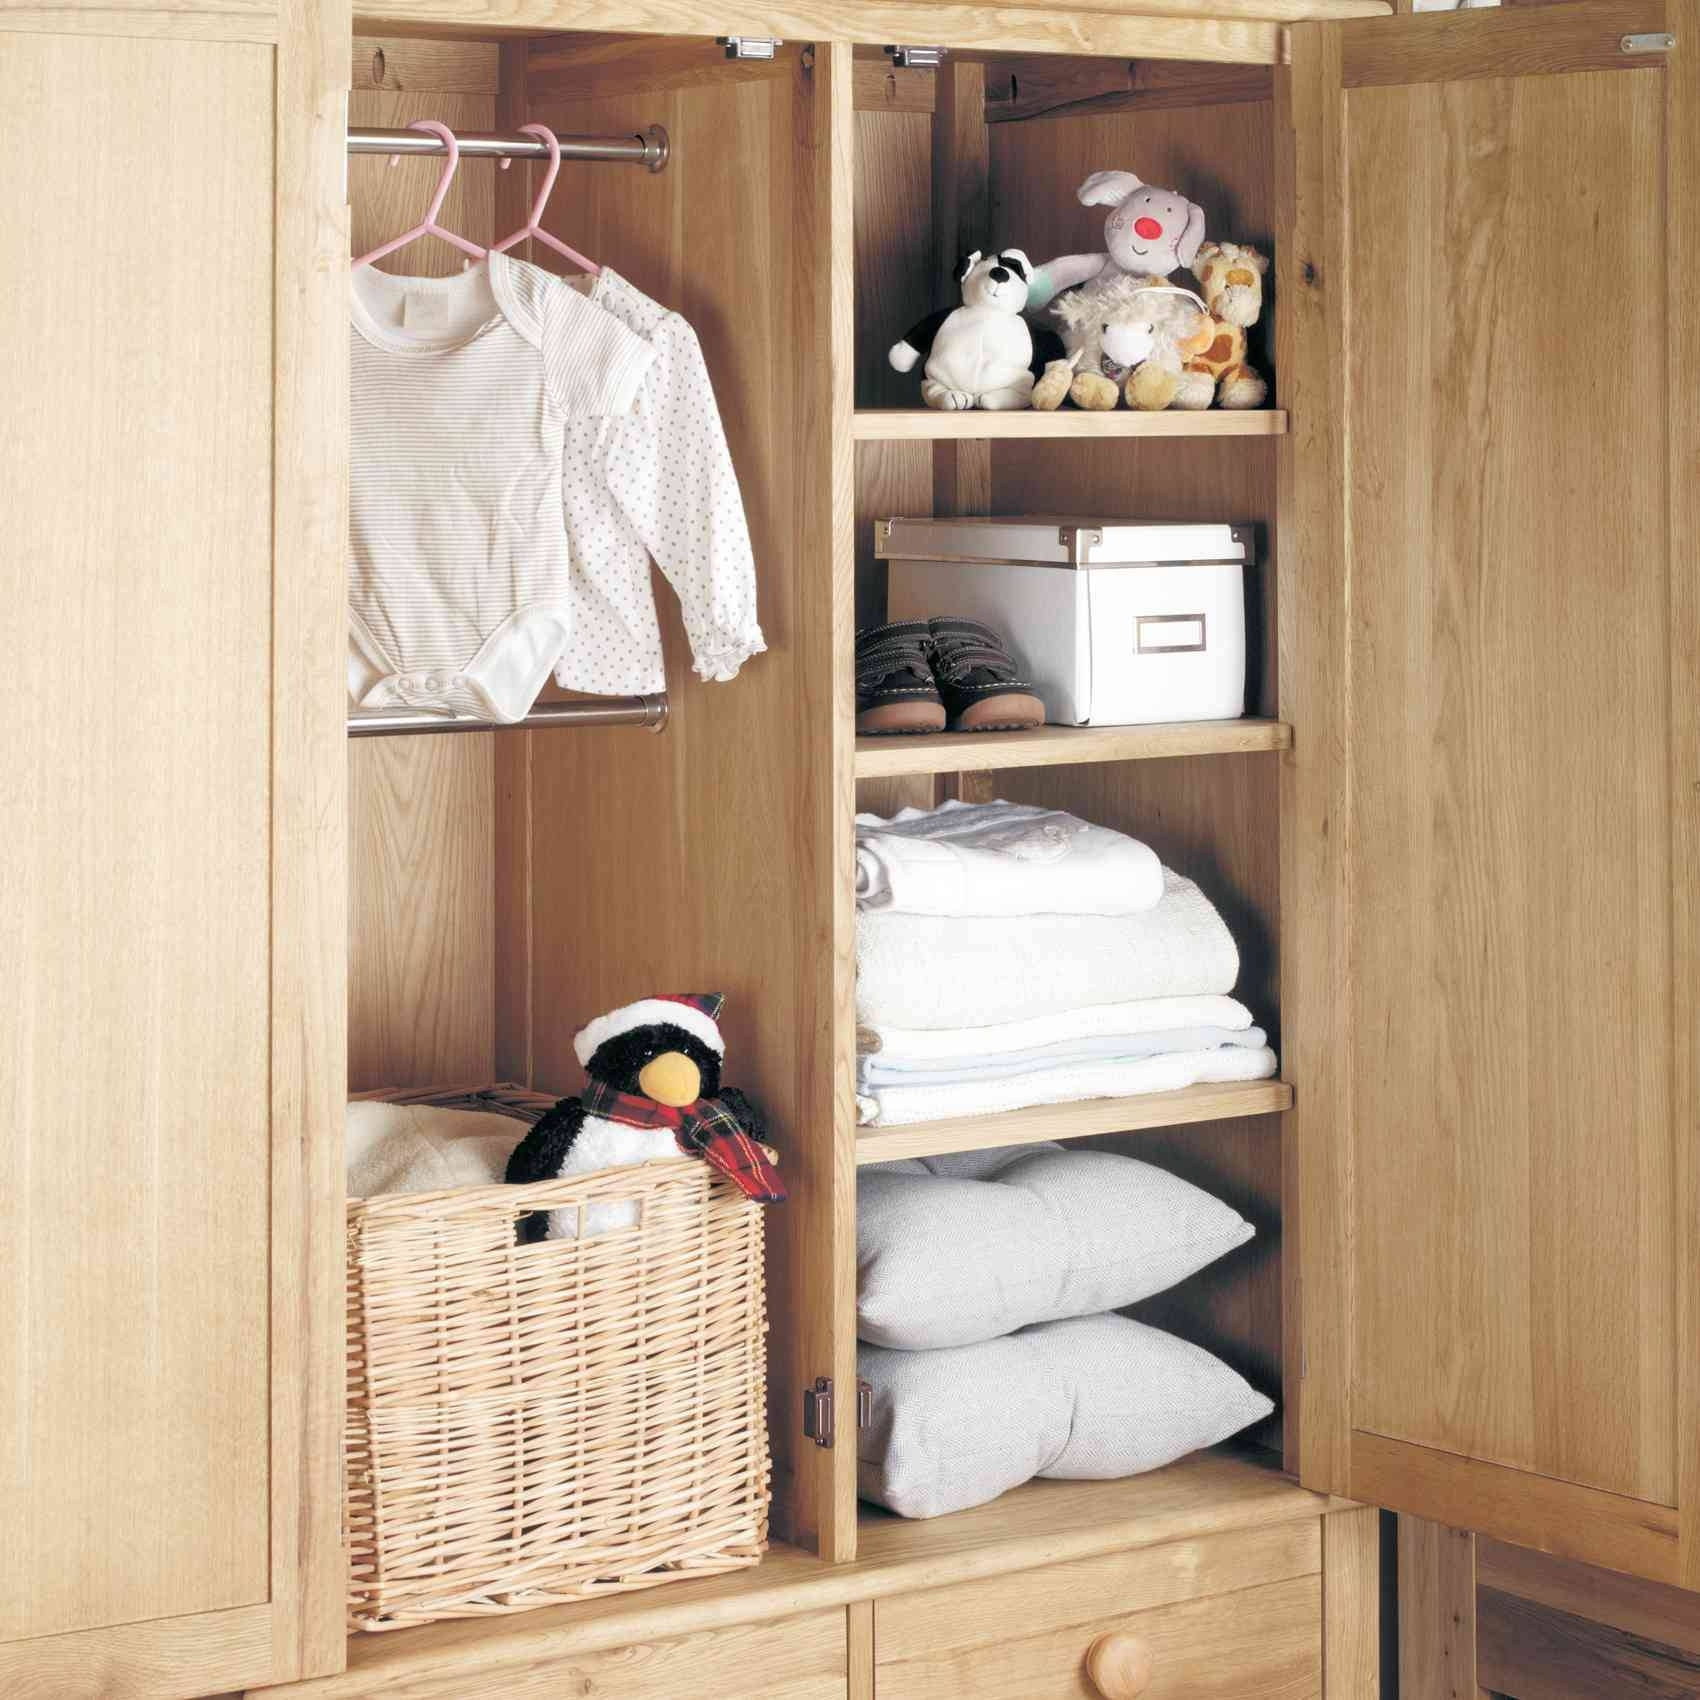 Children's Oak Double Wardrobe | Hampshire Furniture intended for Wardrobe Double Hanging Rail (Image 5 of 30)